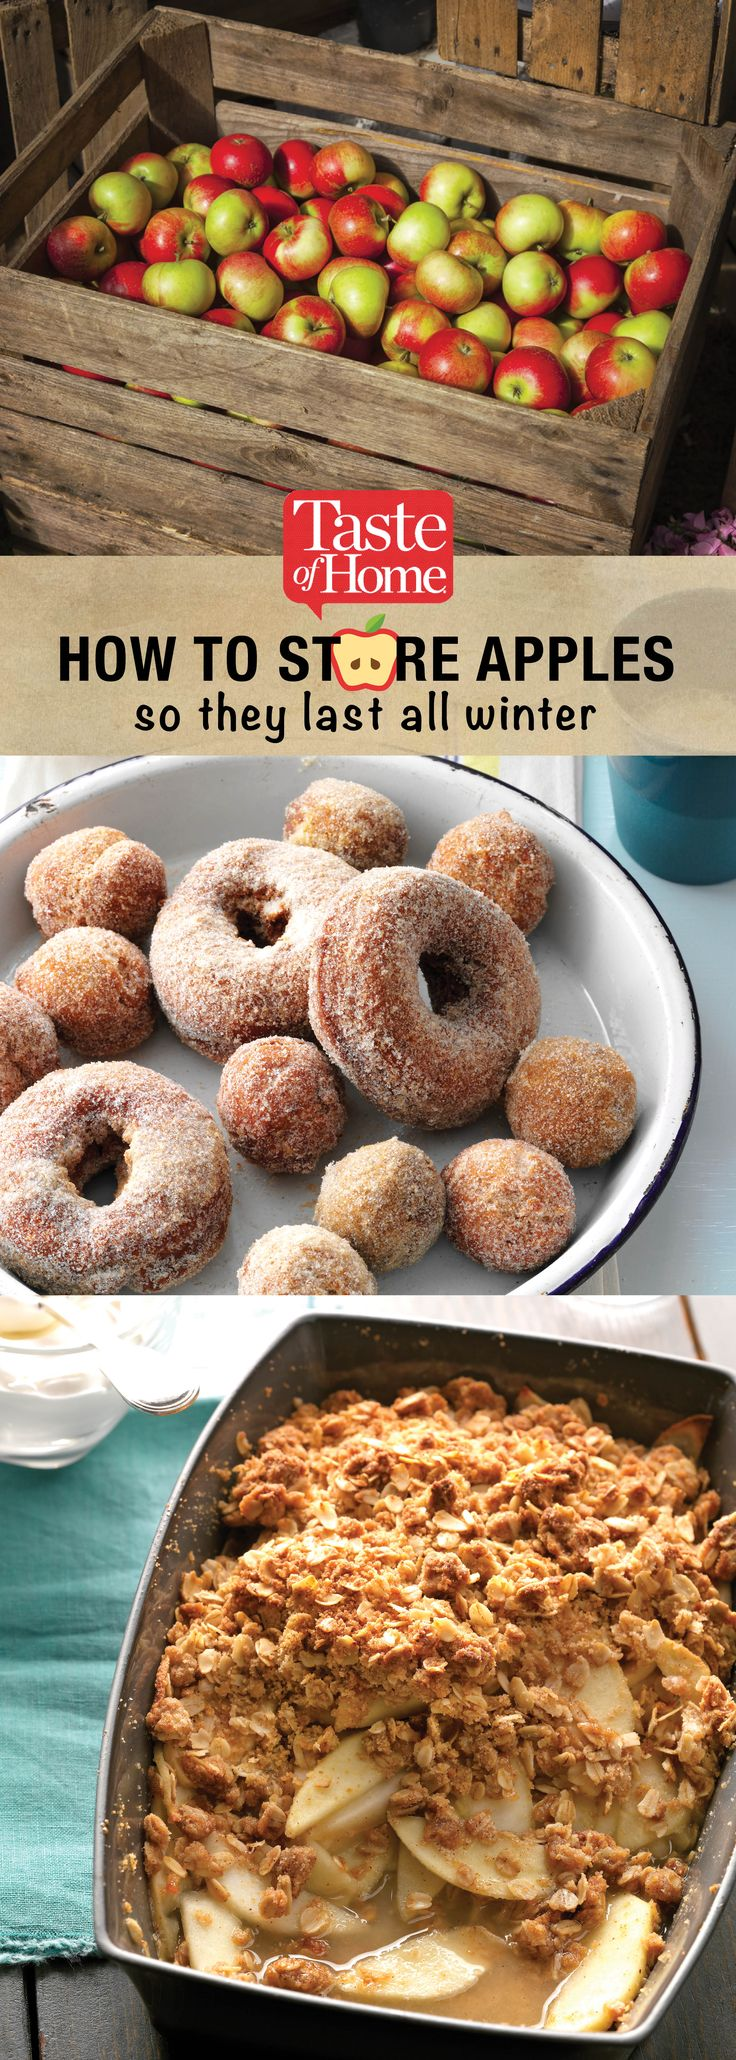 How to Store Apples So They Last All Winter (from Taste of Home)